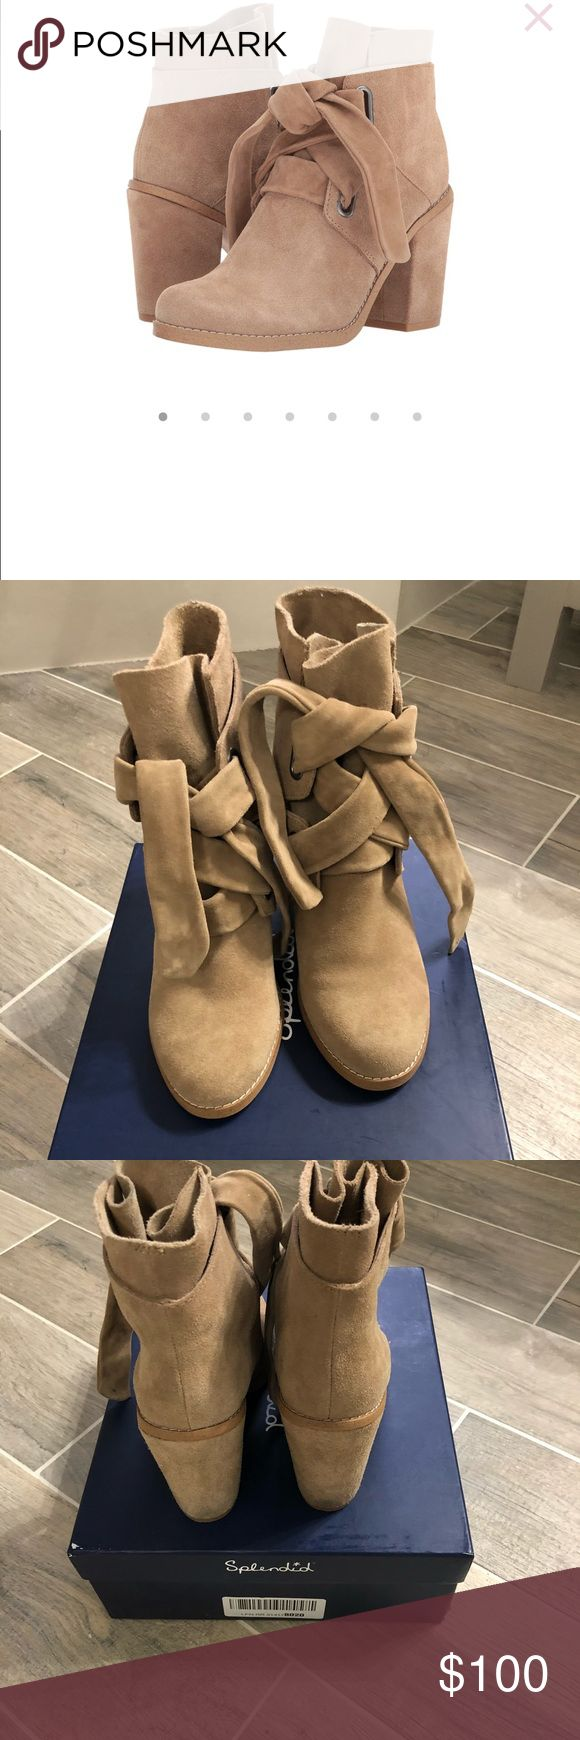 Splendid Rhiannon Bootie- Light Tan Super cute booties in light tan, very neutral color. Only worn twice. Sold with original box. Splendid Shoes Ankle Boots & Booties